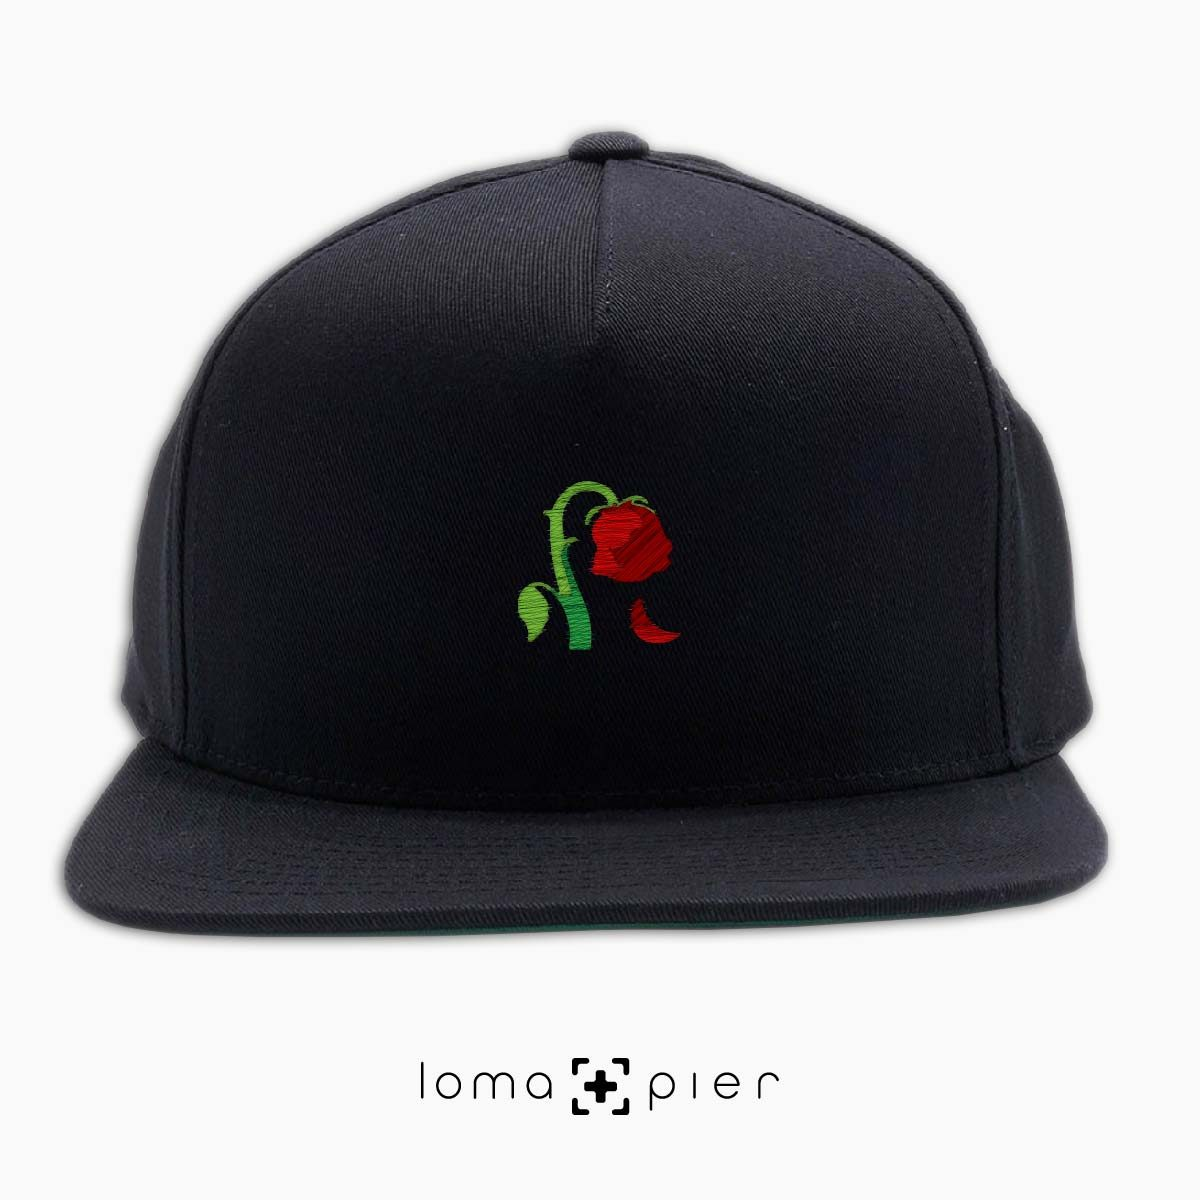 DYING ROSE EMOJI icon embroidered on a black classic snapback hat by loma+pier hat store